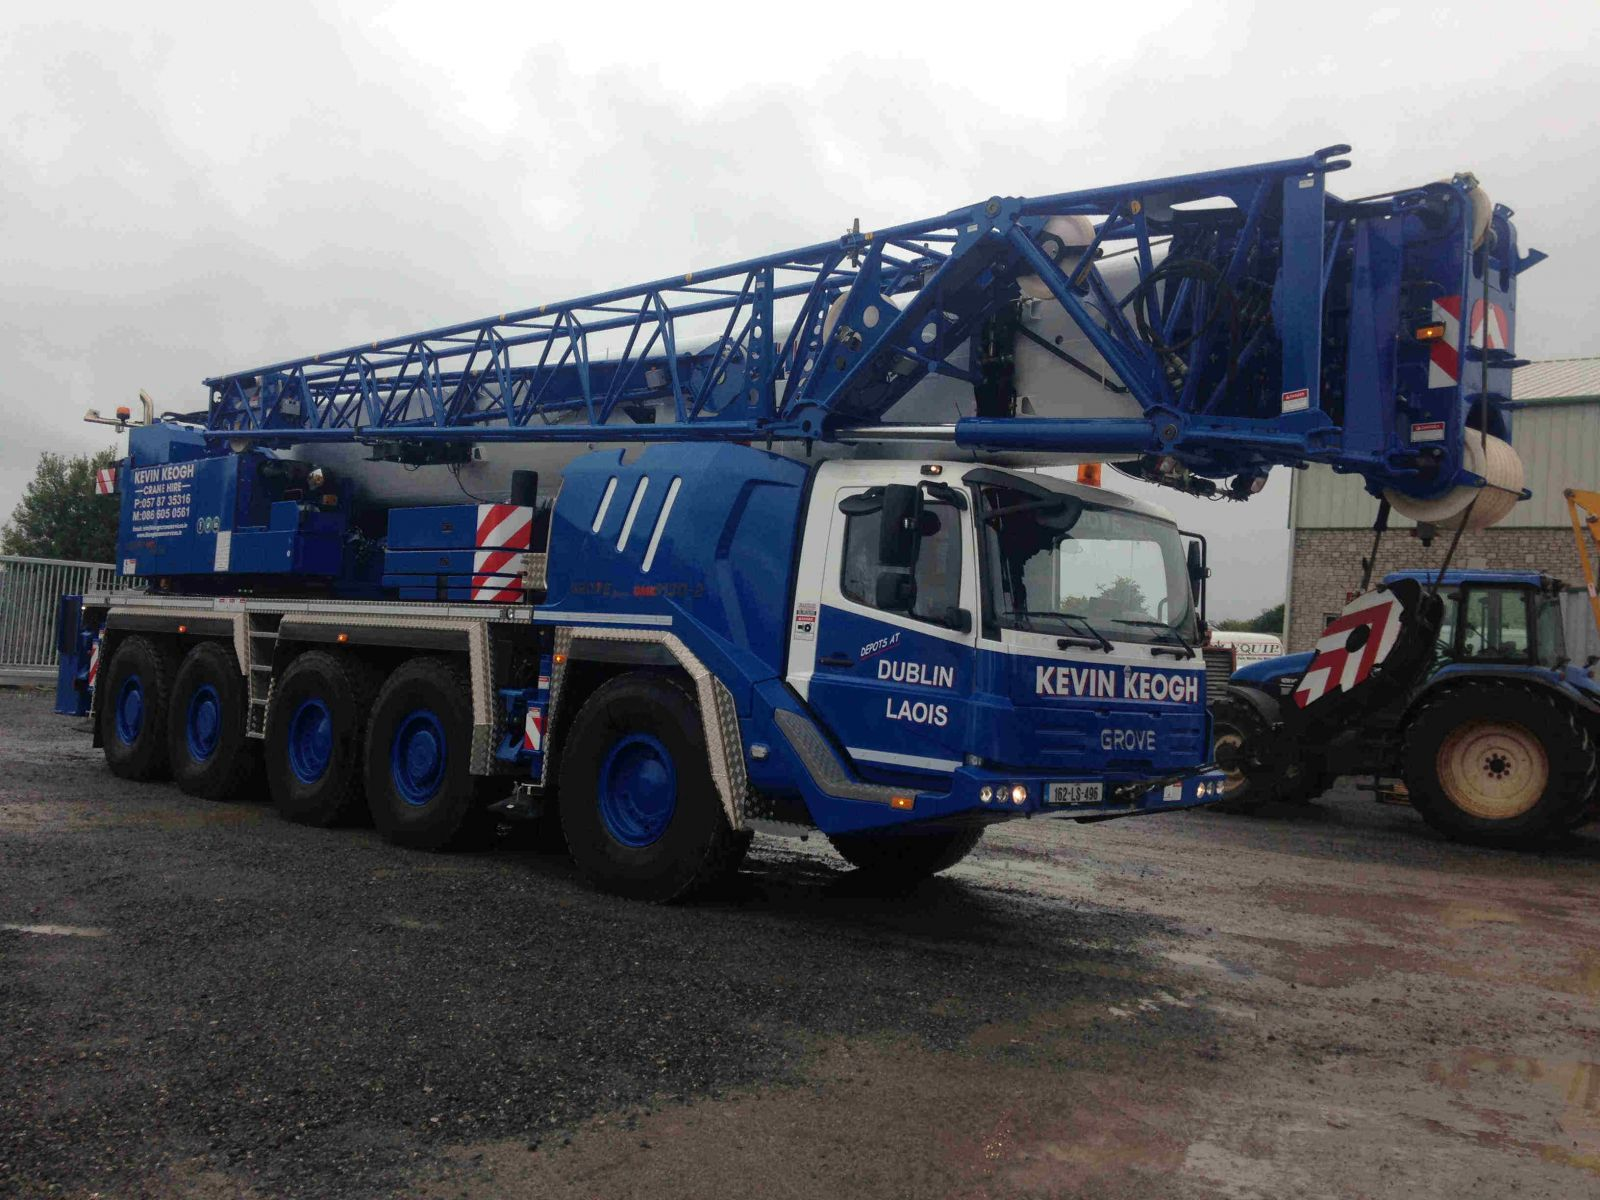 Kevin Keogh Mobile Crane Hire